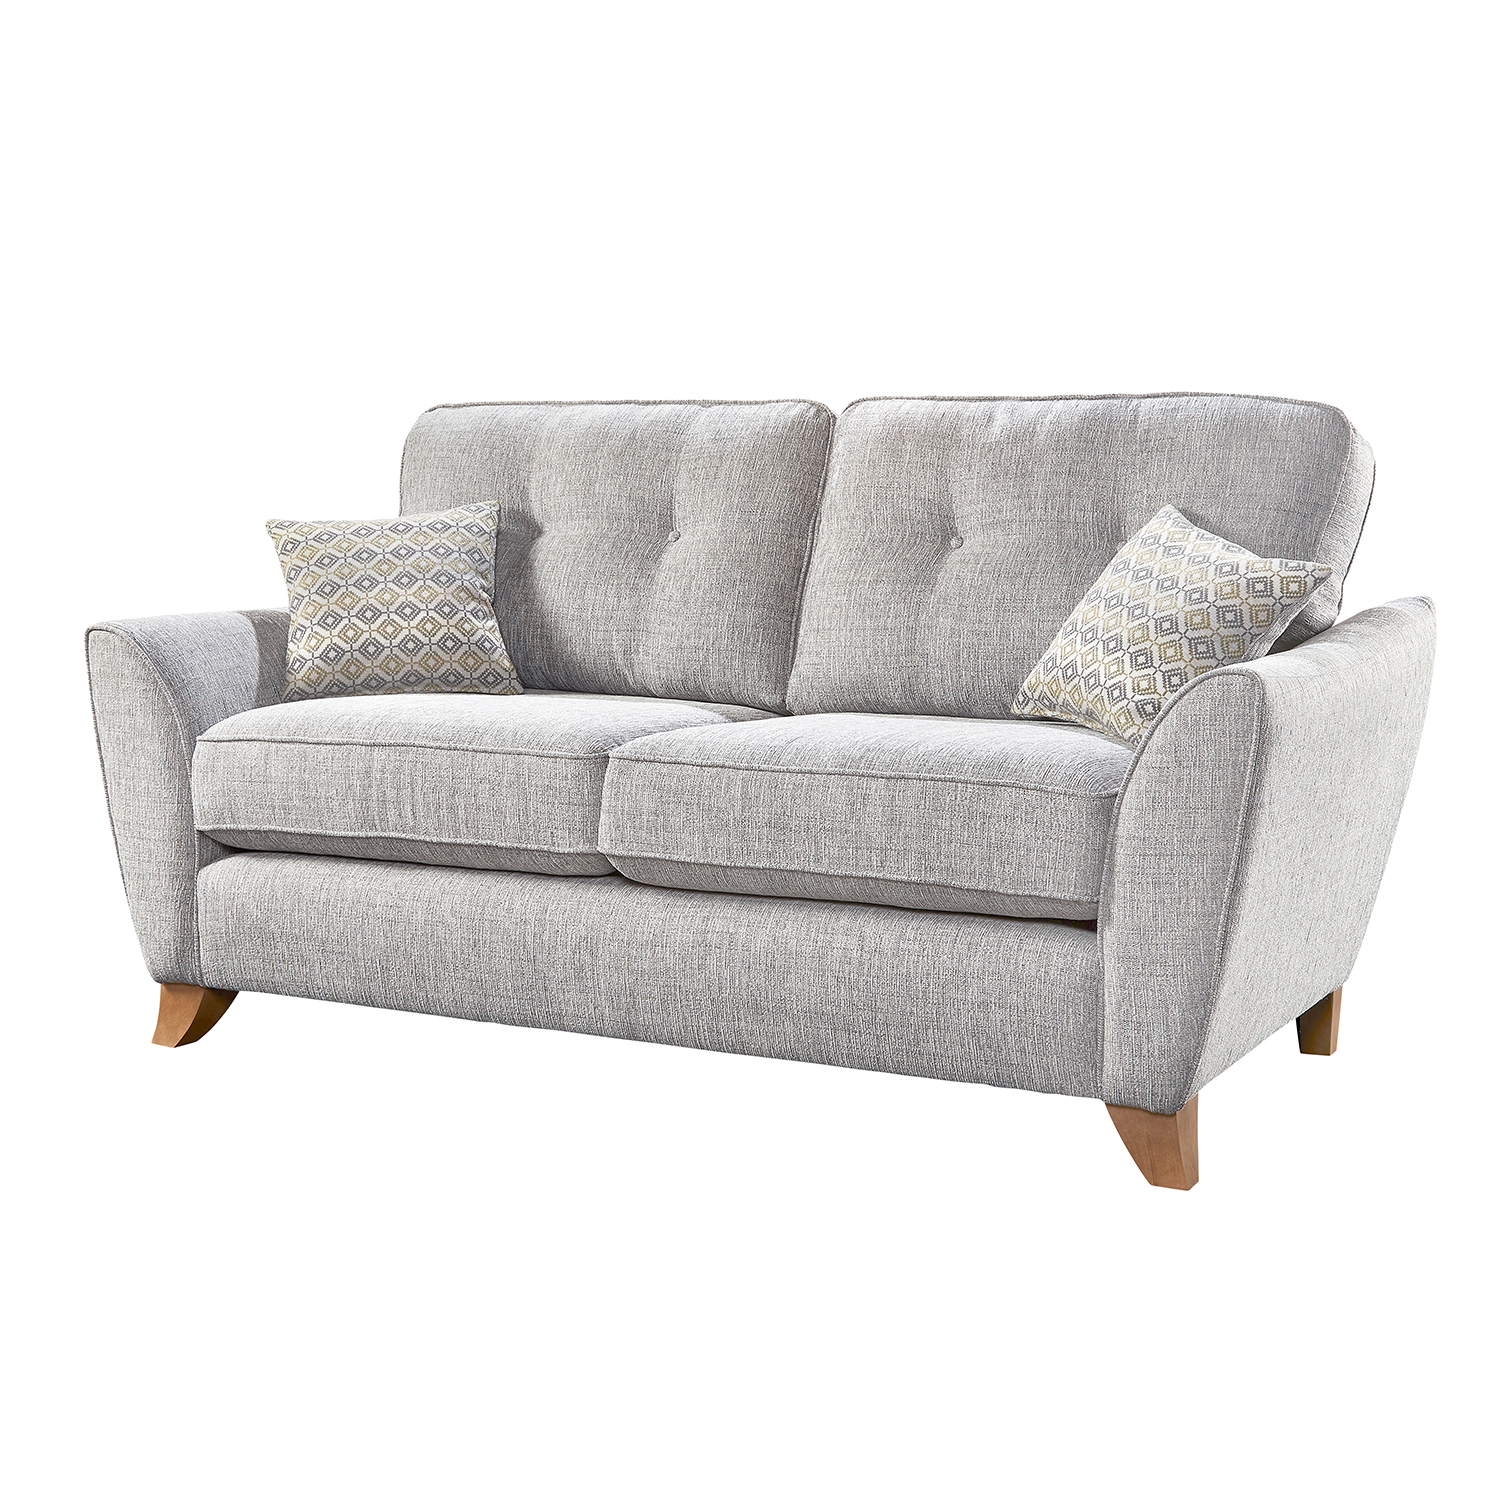 Amberley 2 Seater Sofa Collingwood Batchellor